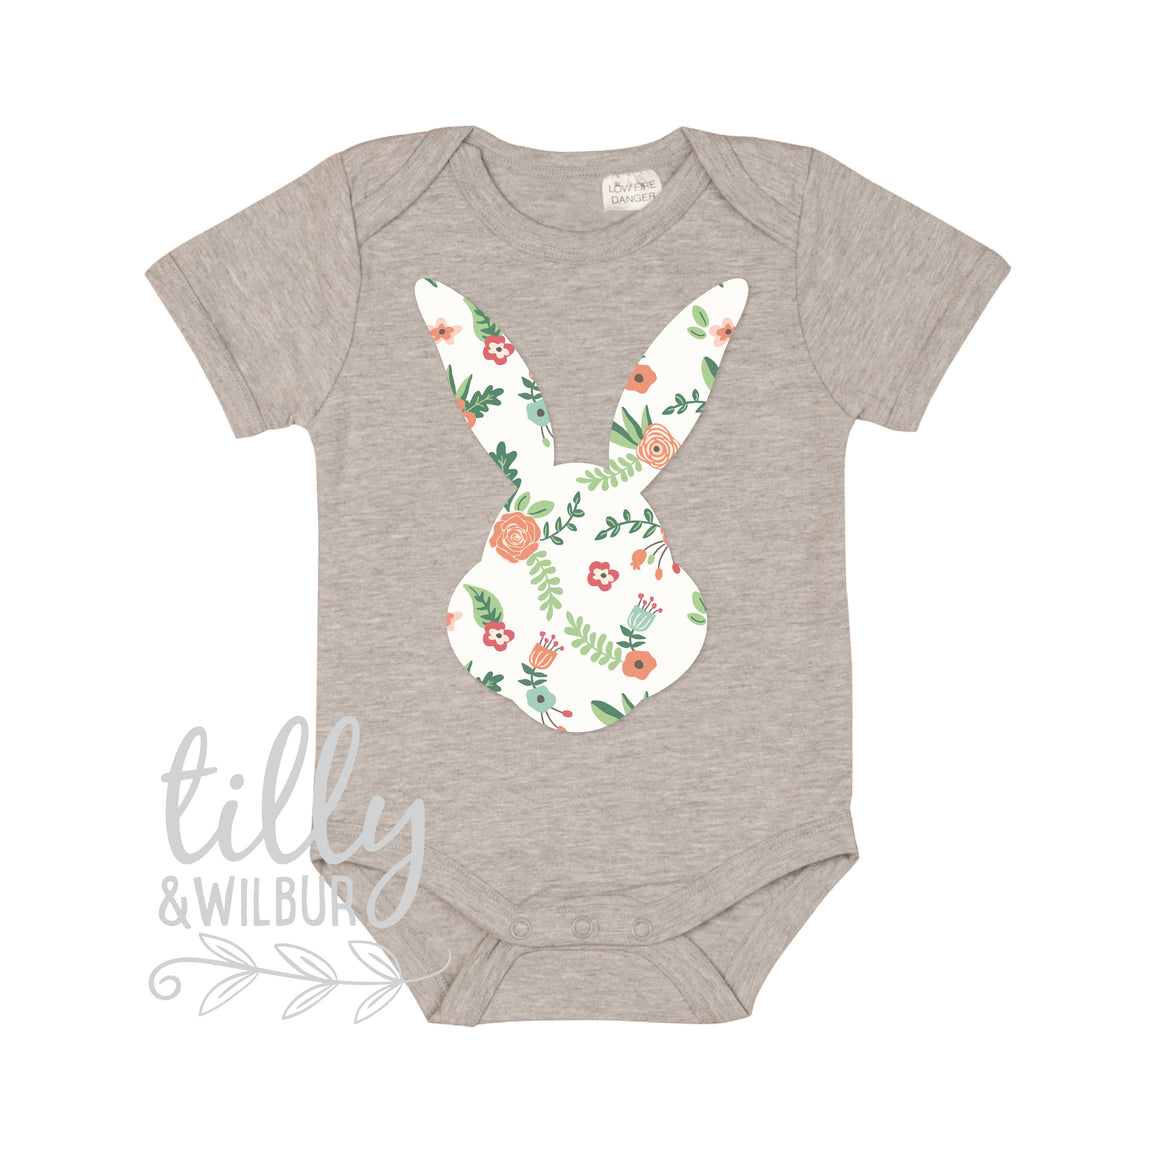 Pretty Patterned Easter Baby Bodysuit, First Easter One-Piece, Newborn Easter Gift, 1st Easter Outfit, Baby's 1st Easter, Bunny Rabbit